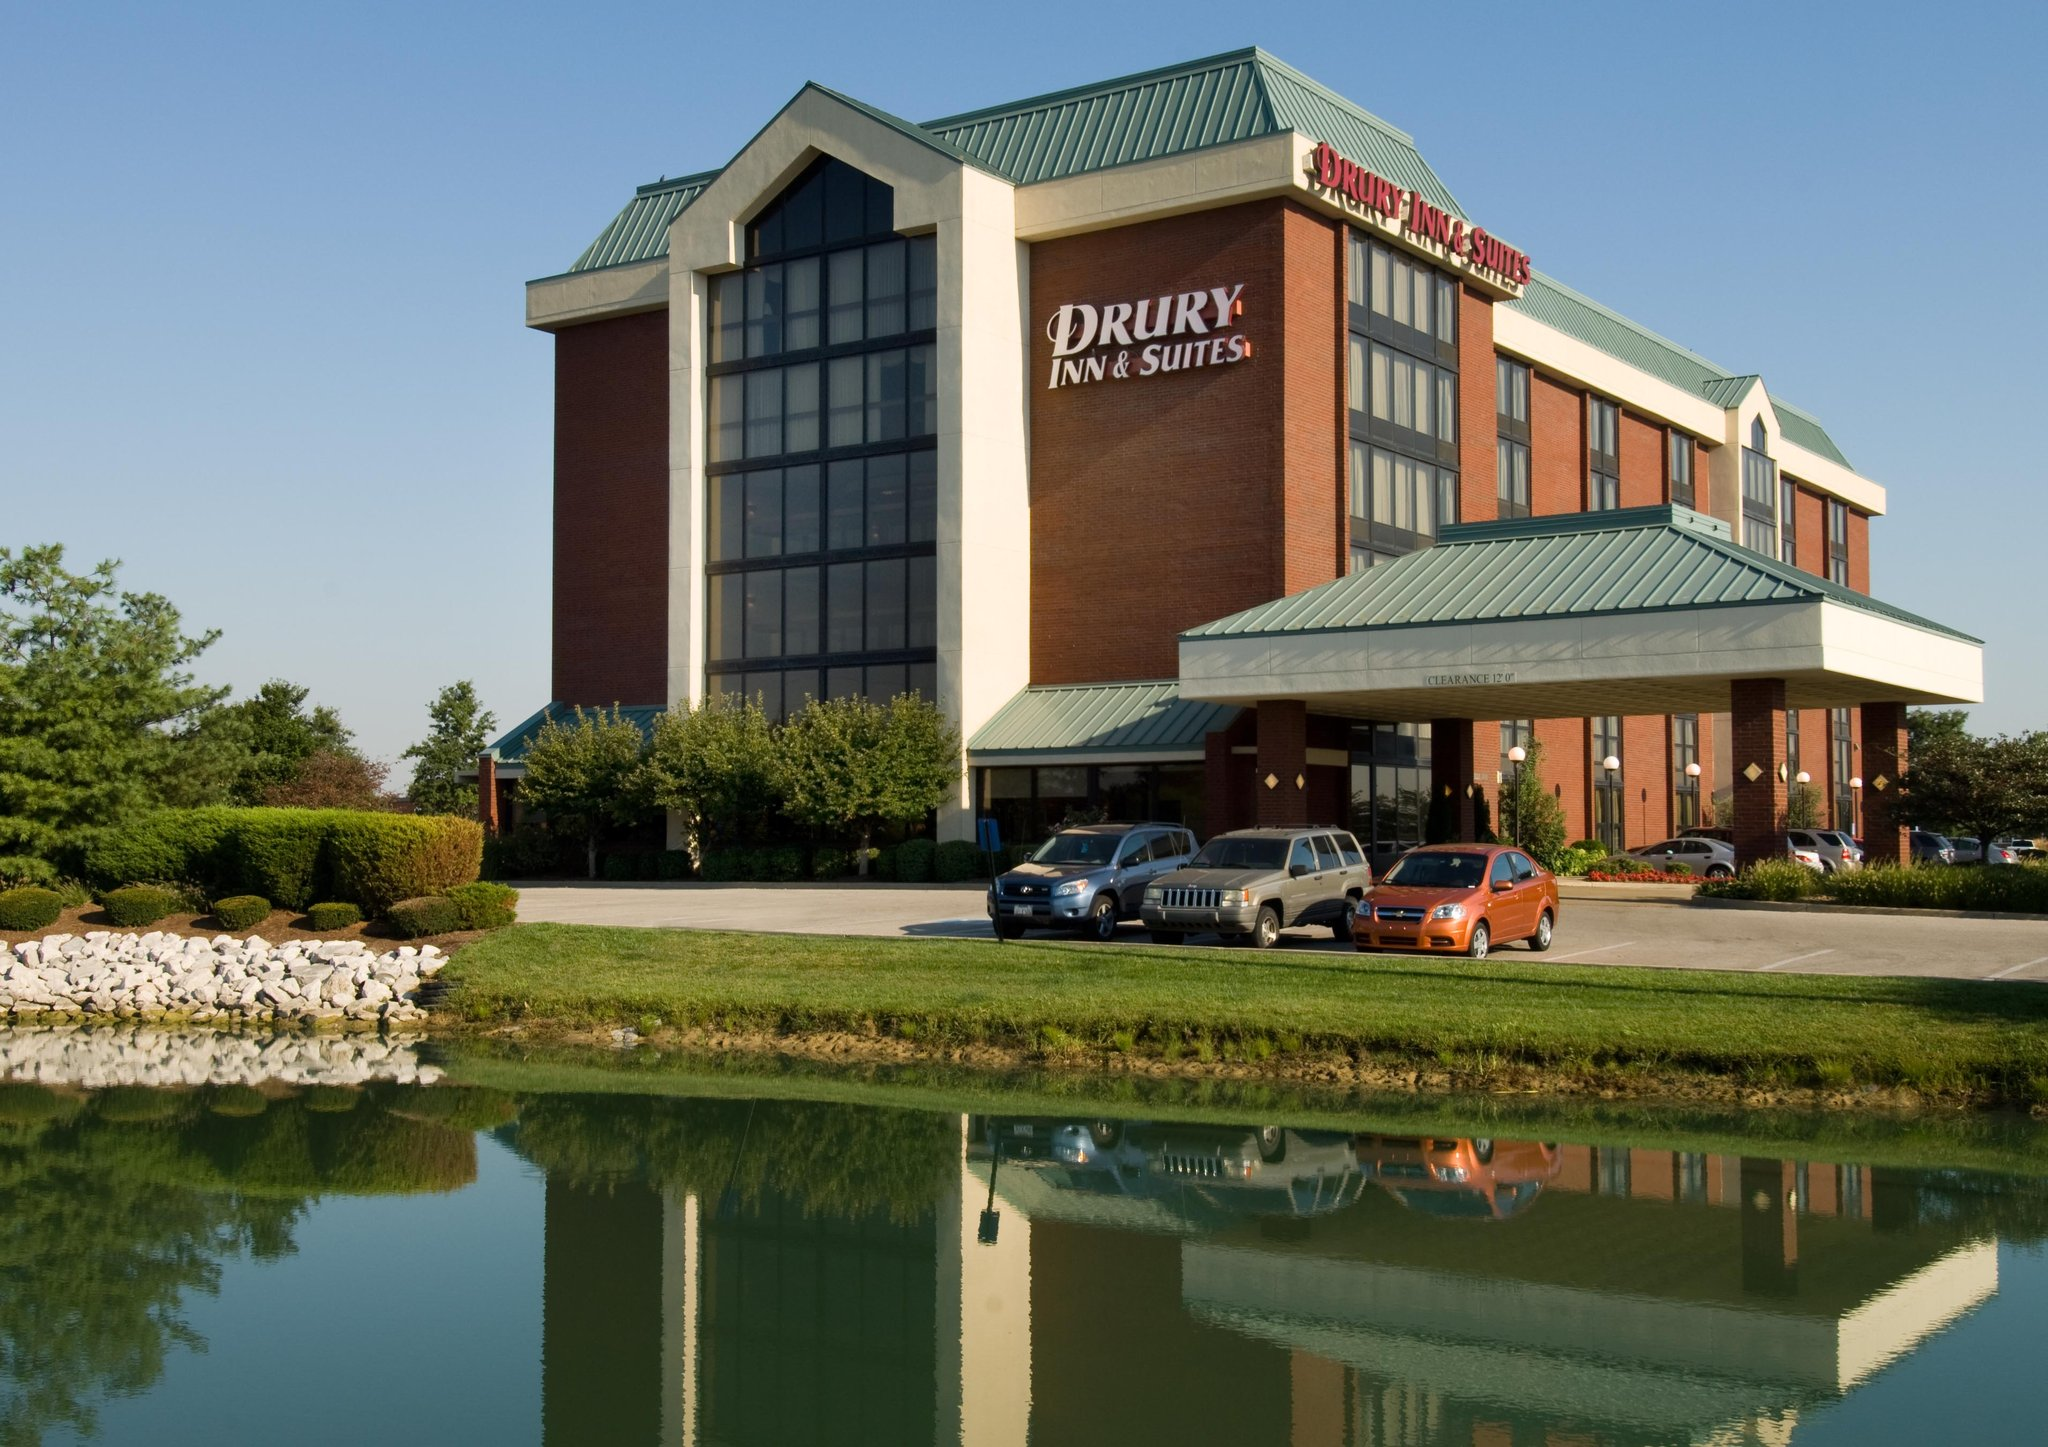 Drury Inn & Suites Evansville East